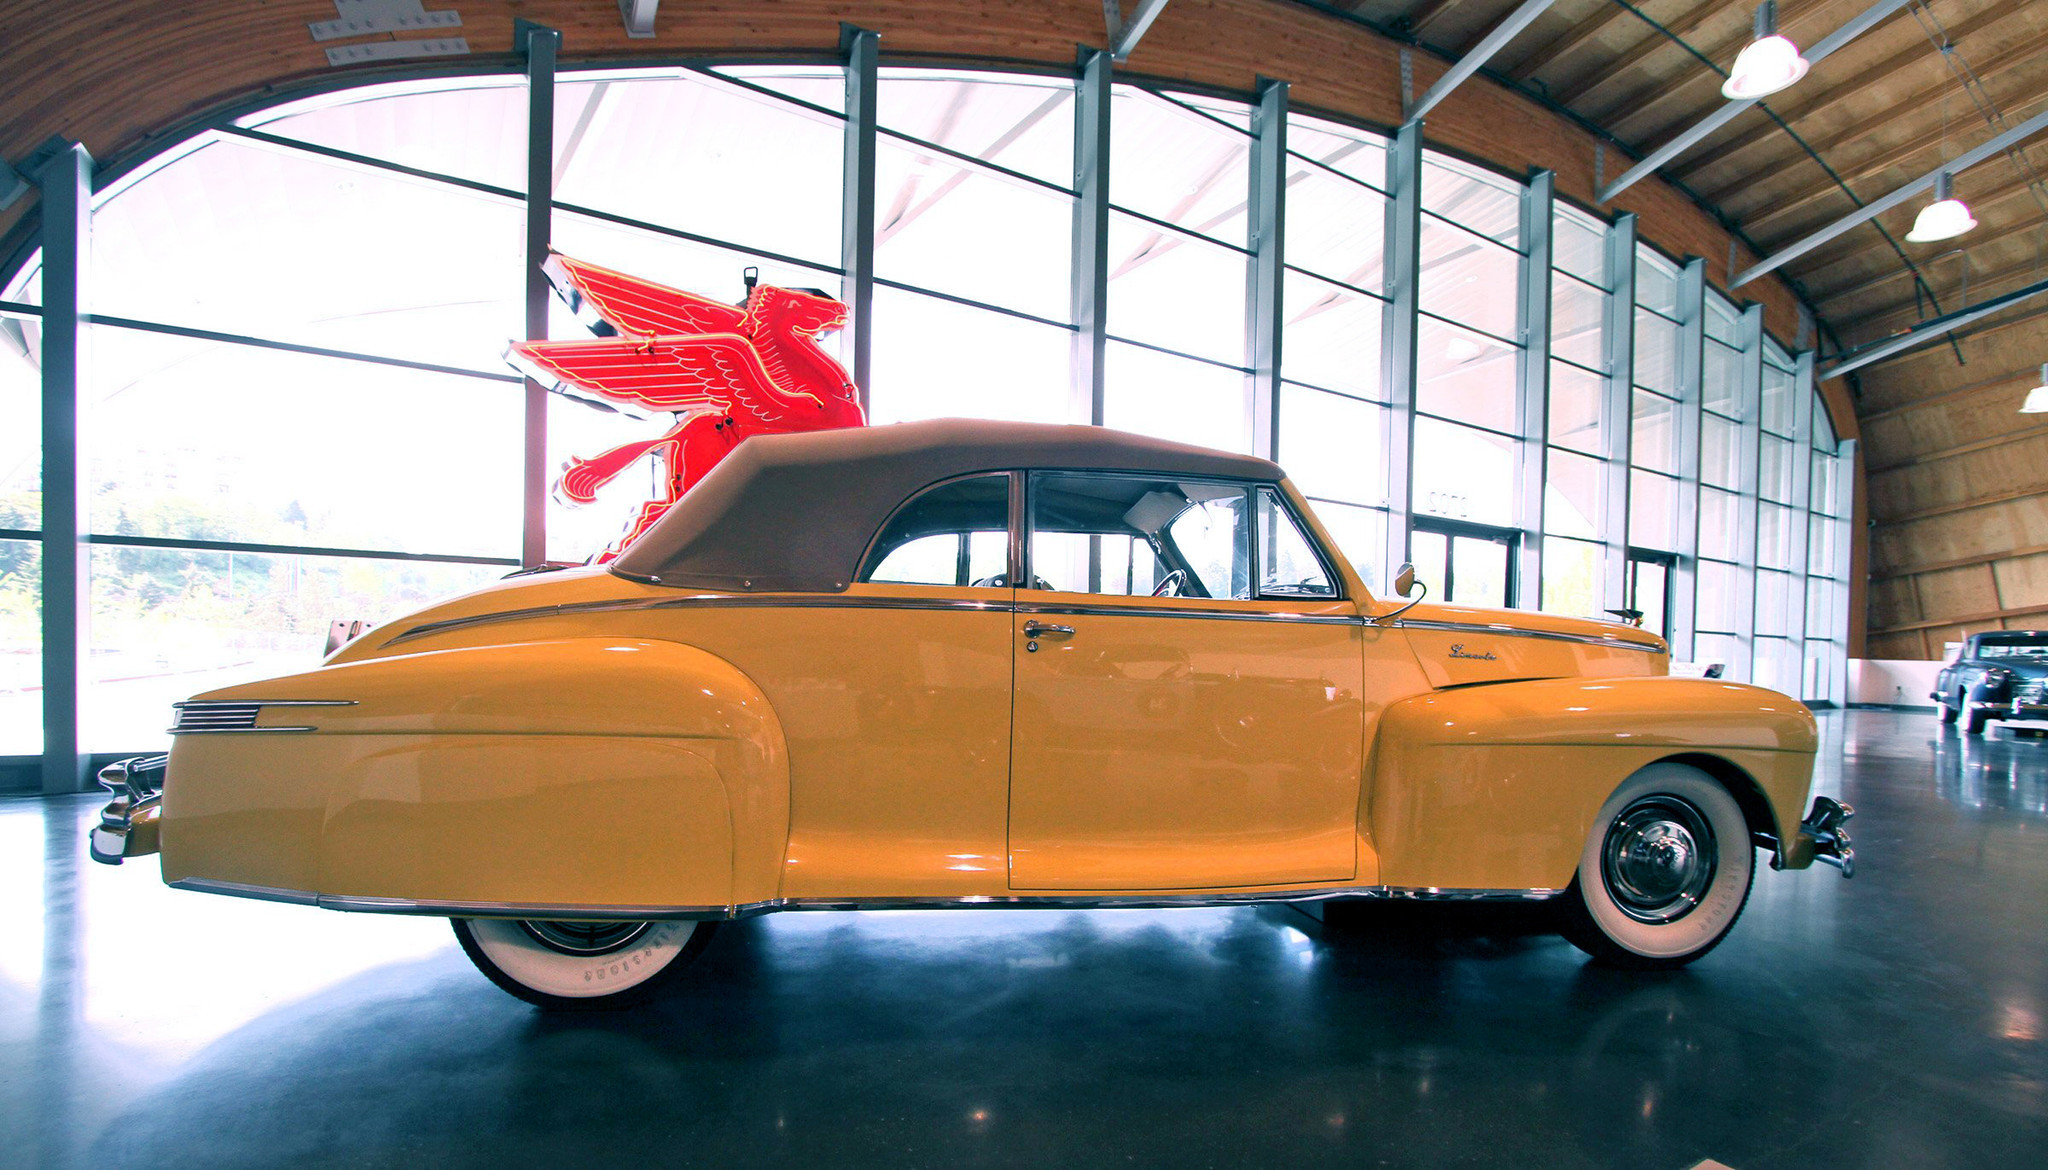 On display near the entrance is a gleaming 1947 yellow Lincoln convertible at LeMay car museum in Tacoma, Washington.